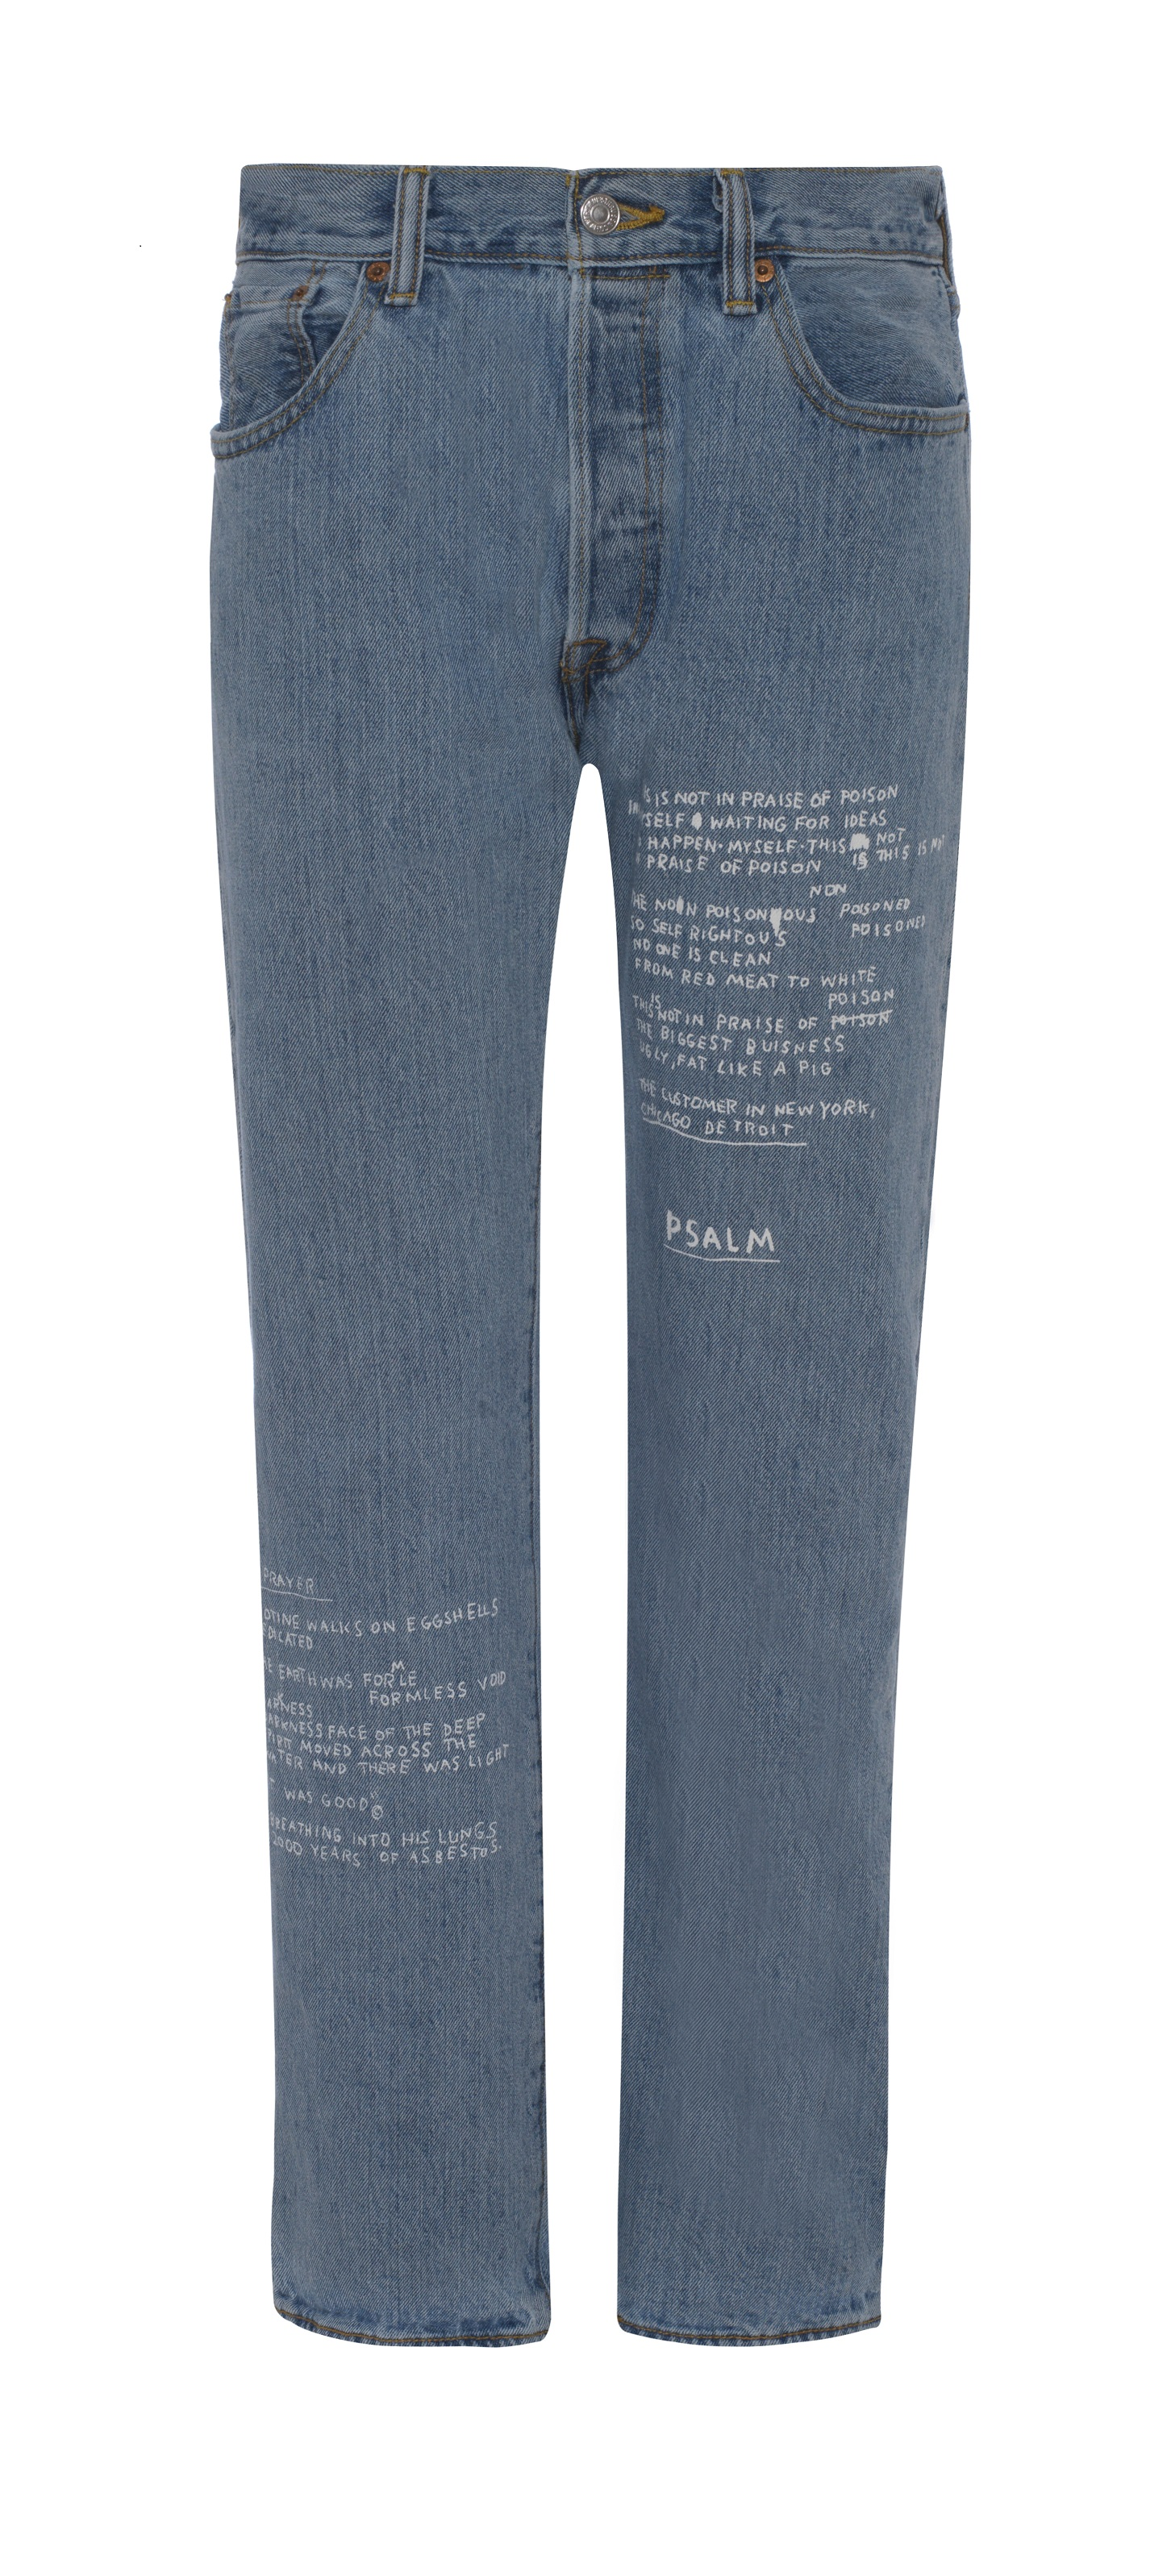 BASQUIAT - STRAIGHT LEG MID RISE JEANS WITH WRITING - £155 - BROWNS FASHION.jpg